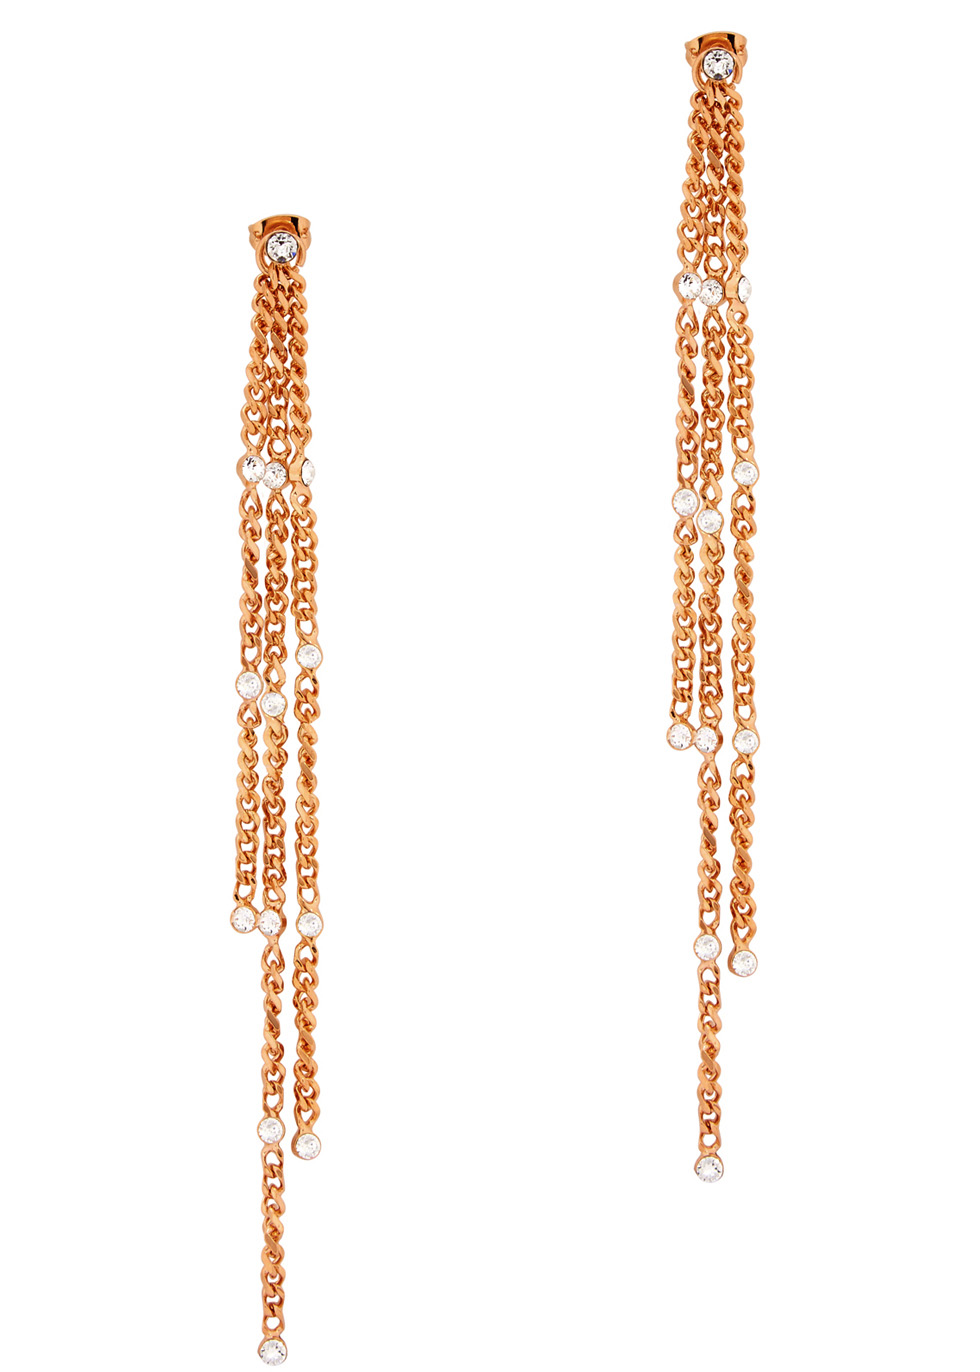 VITA FEDE STELLA SOLITAIRE ROSE GOLD-PLATED DROP EARRINGS